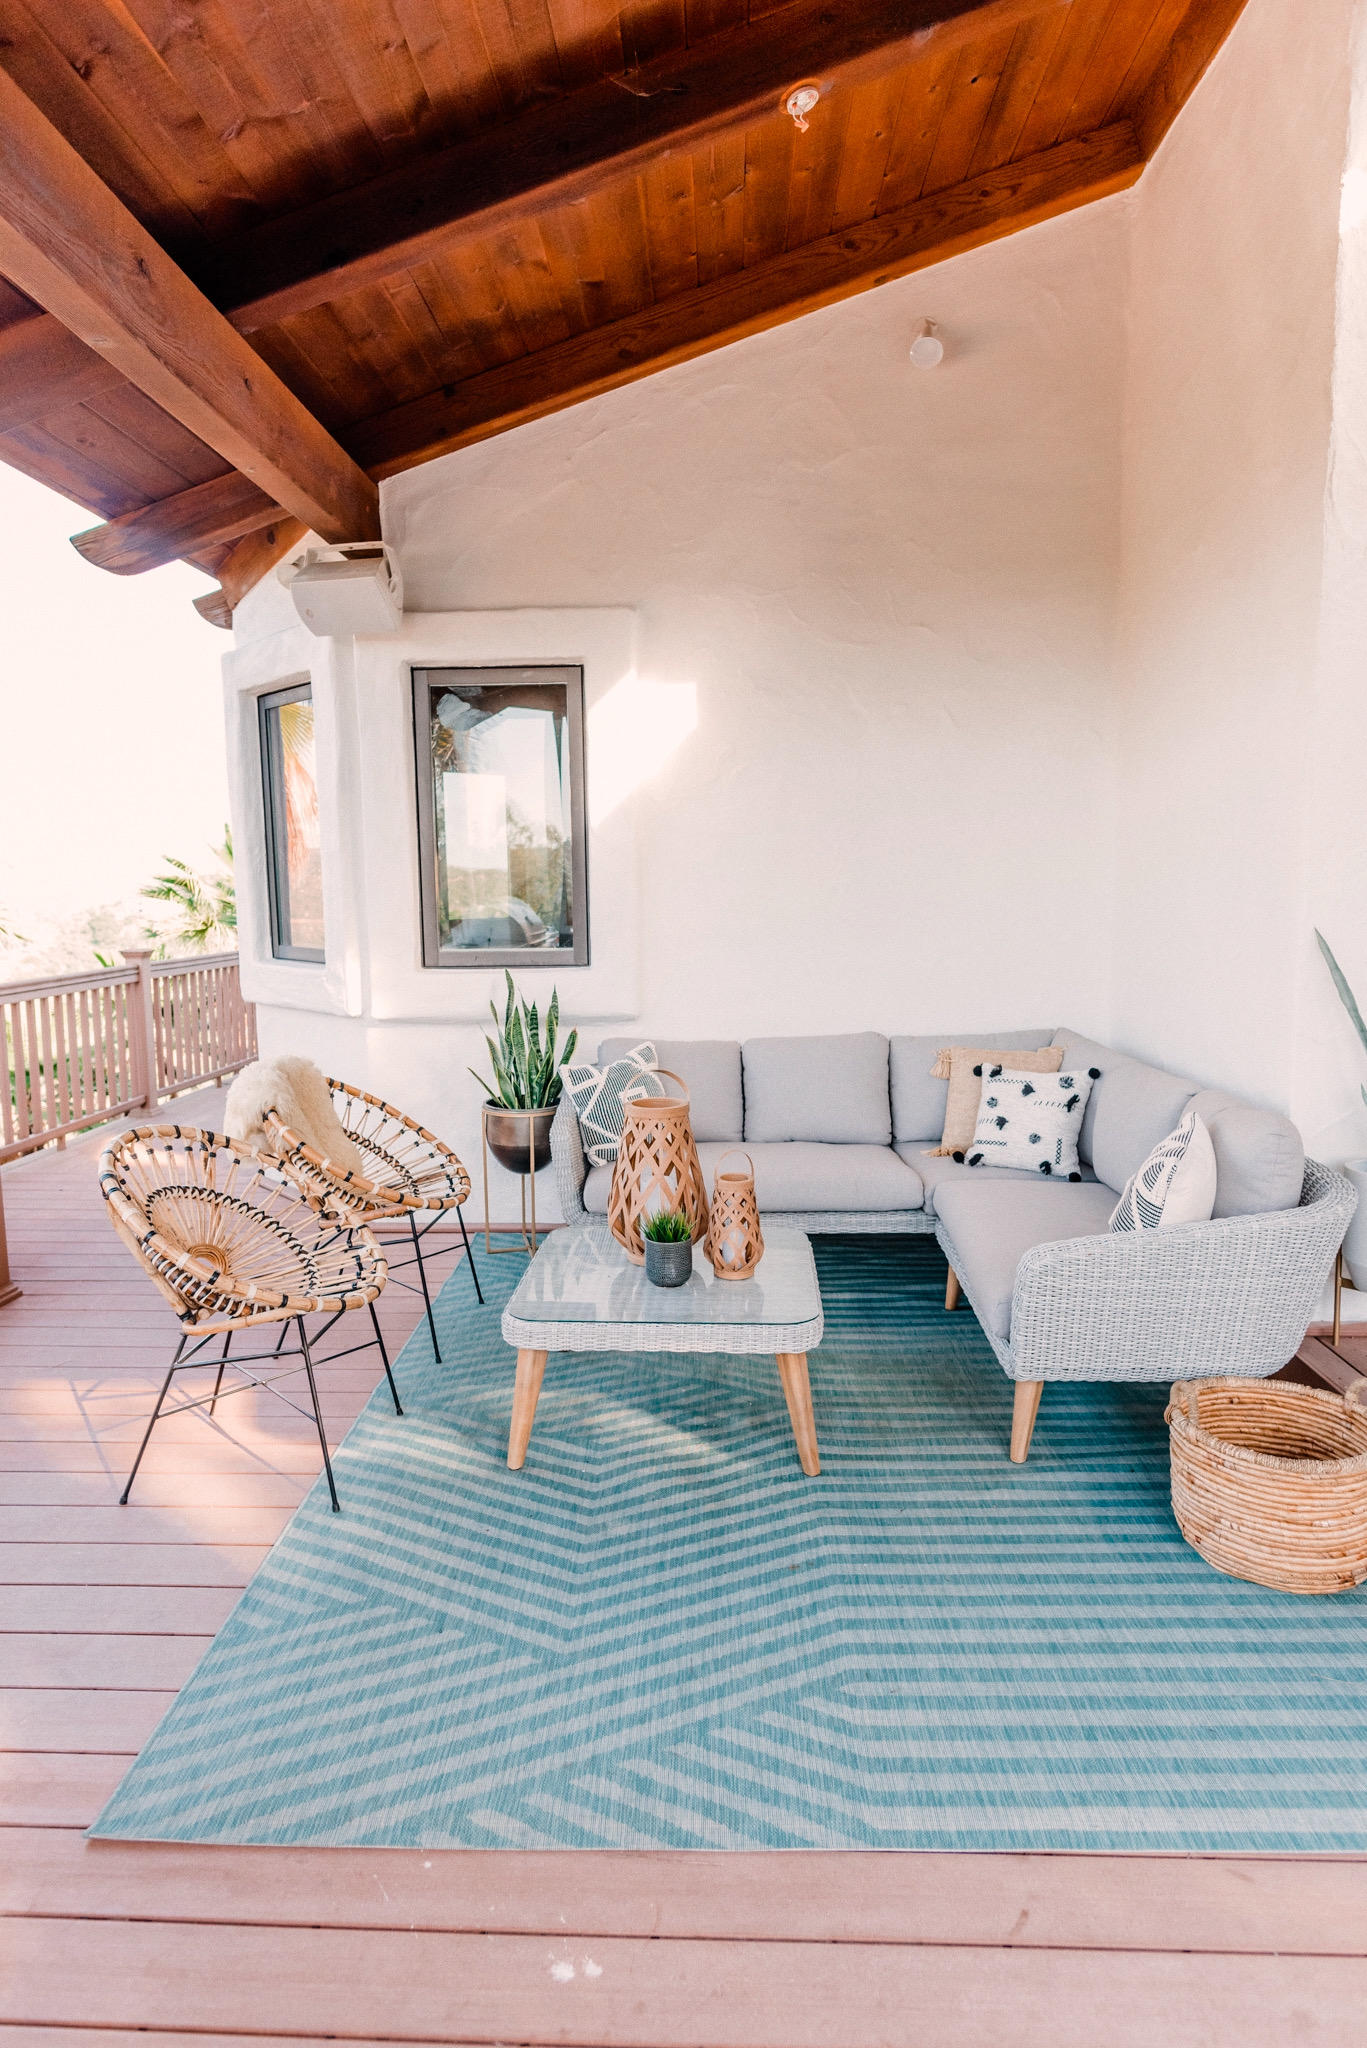 CB2 OUTDOOR DECOR featured by top San Diego lifestyle blogger, Navy Grace. | CB2 Furniture by popular San Diego life and style blog, Navy Grace: image of a CB2 hurricane lantern, Seminyak Gray Planter, snake tongue plants, blue outdoor rug, woven wicker outdoor couch, woven wicker coffee table, woven basket, and Rattan chairs.